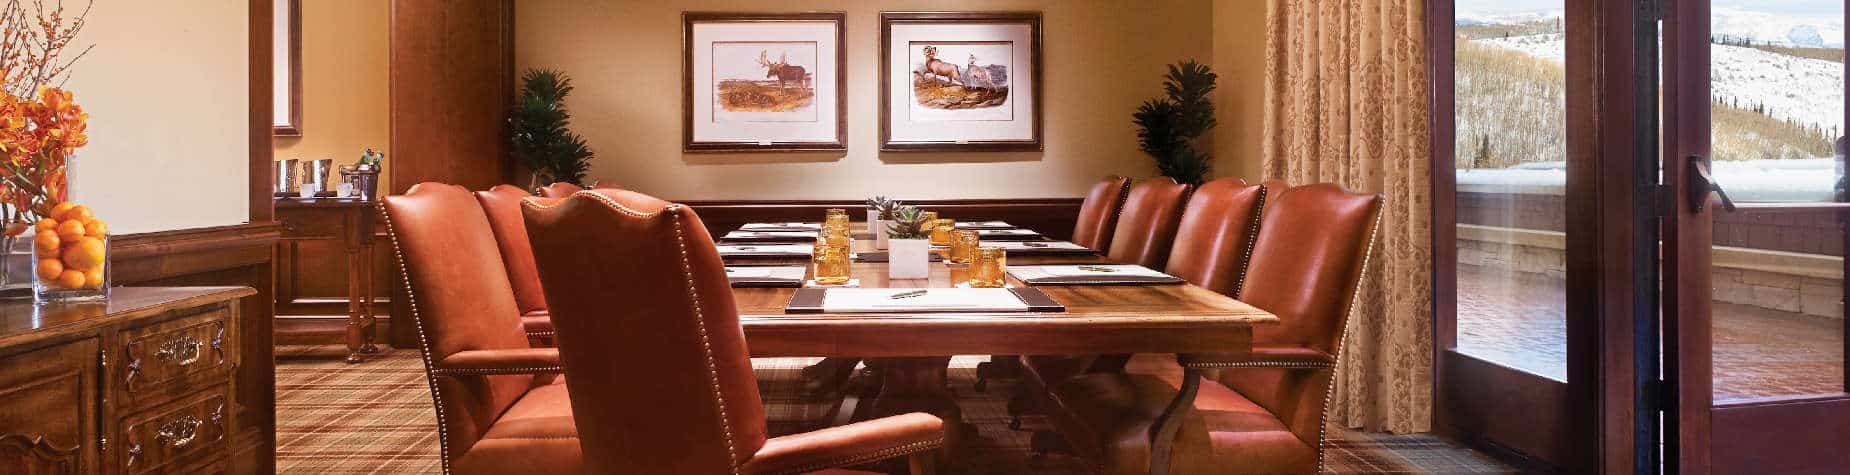 Hotel Corporate Management Bios | Montage Hotels & Resorts